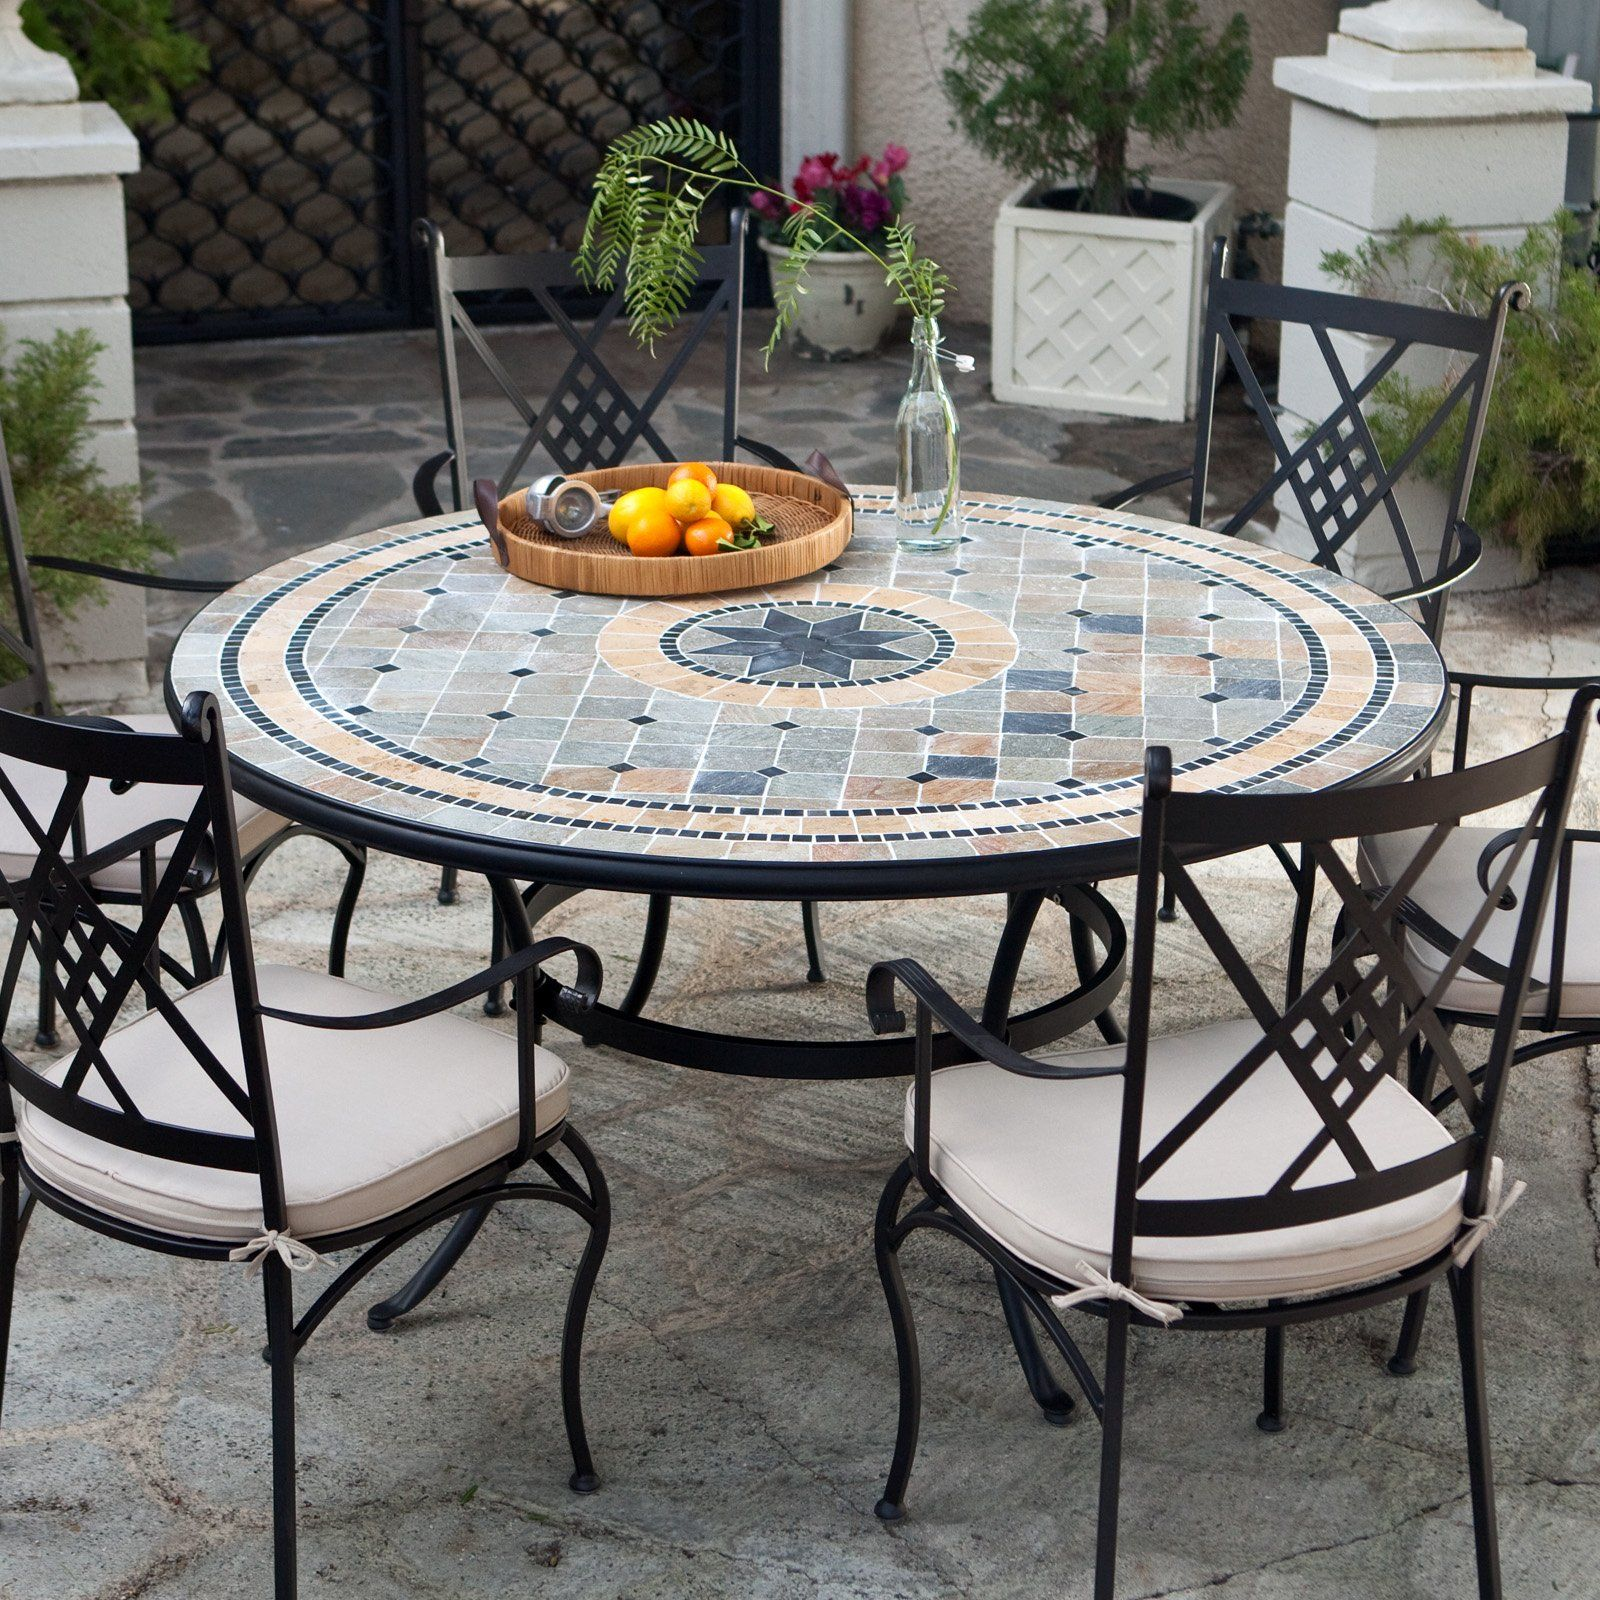 Have To It Palazetto Barcelona 60 In Round Mosaic Patio Dining Set Seats 6 2199 99